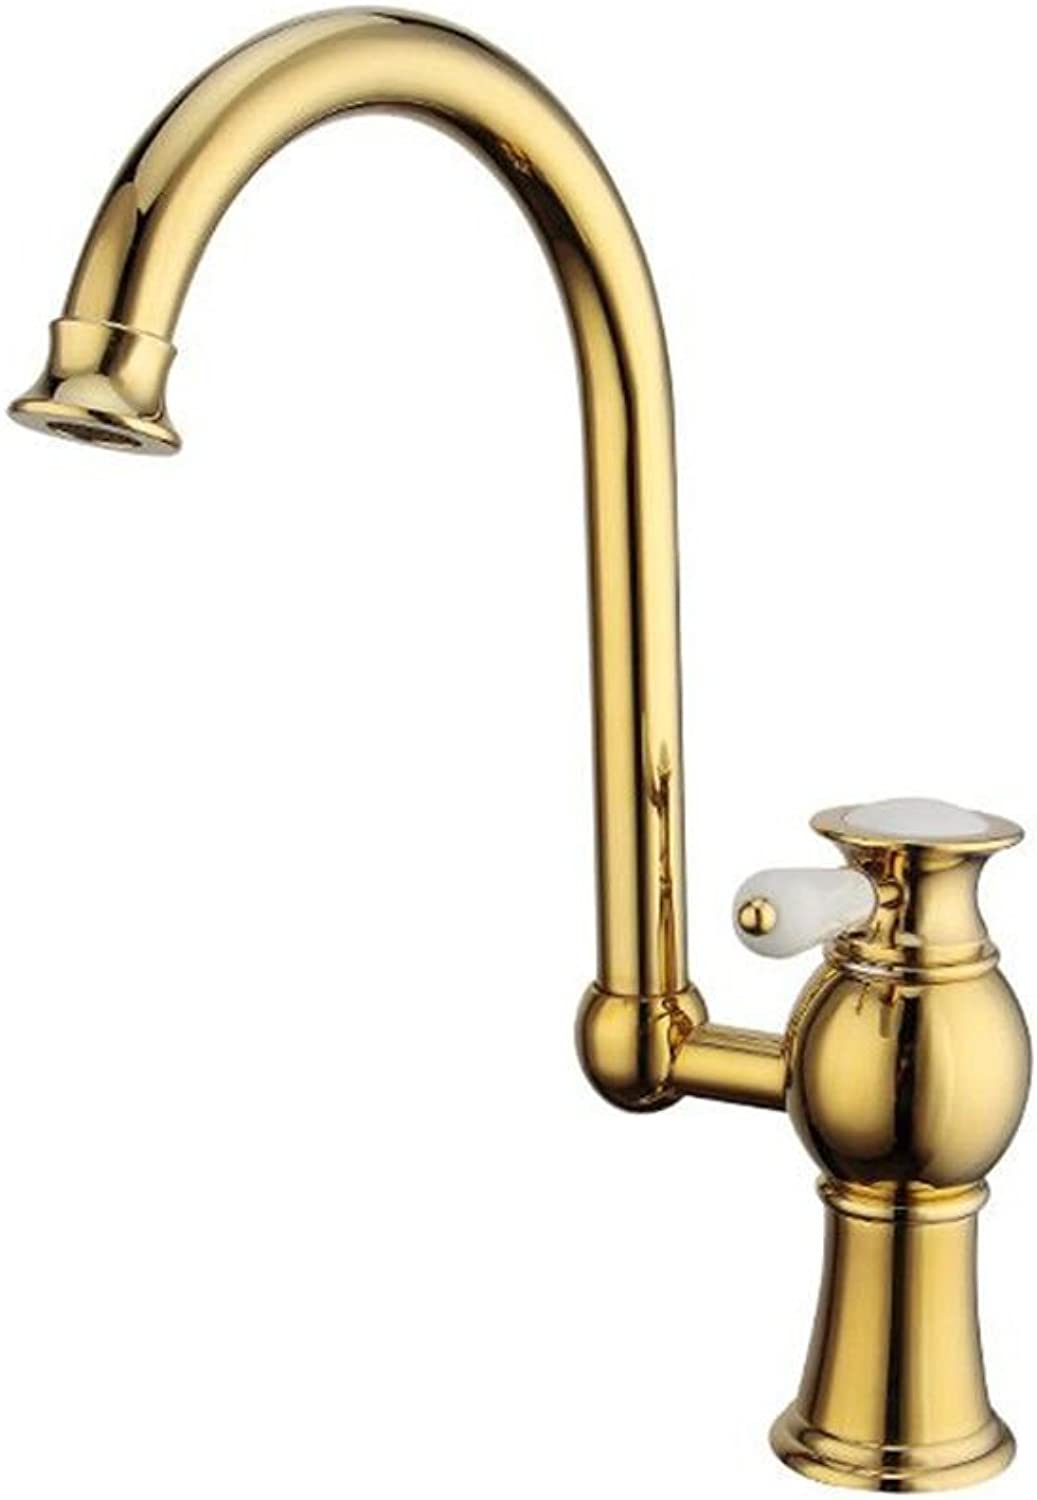 AQMMi Basin Sink Mixer Tap for Lavatory Gilded gold Bathroom Vanity Sink Faucet